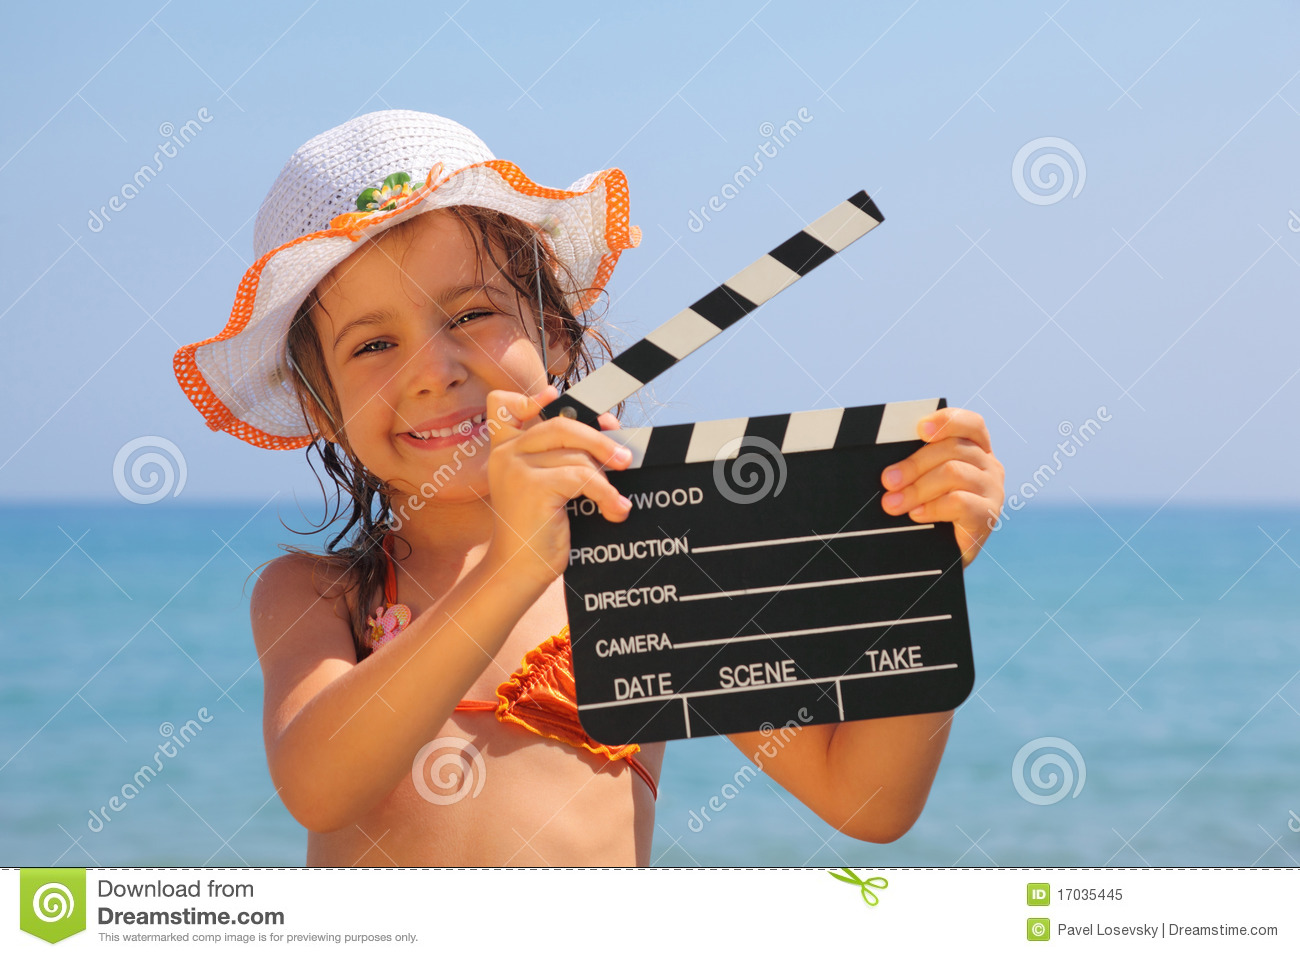 Girl standing on beach and holding clapboard